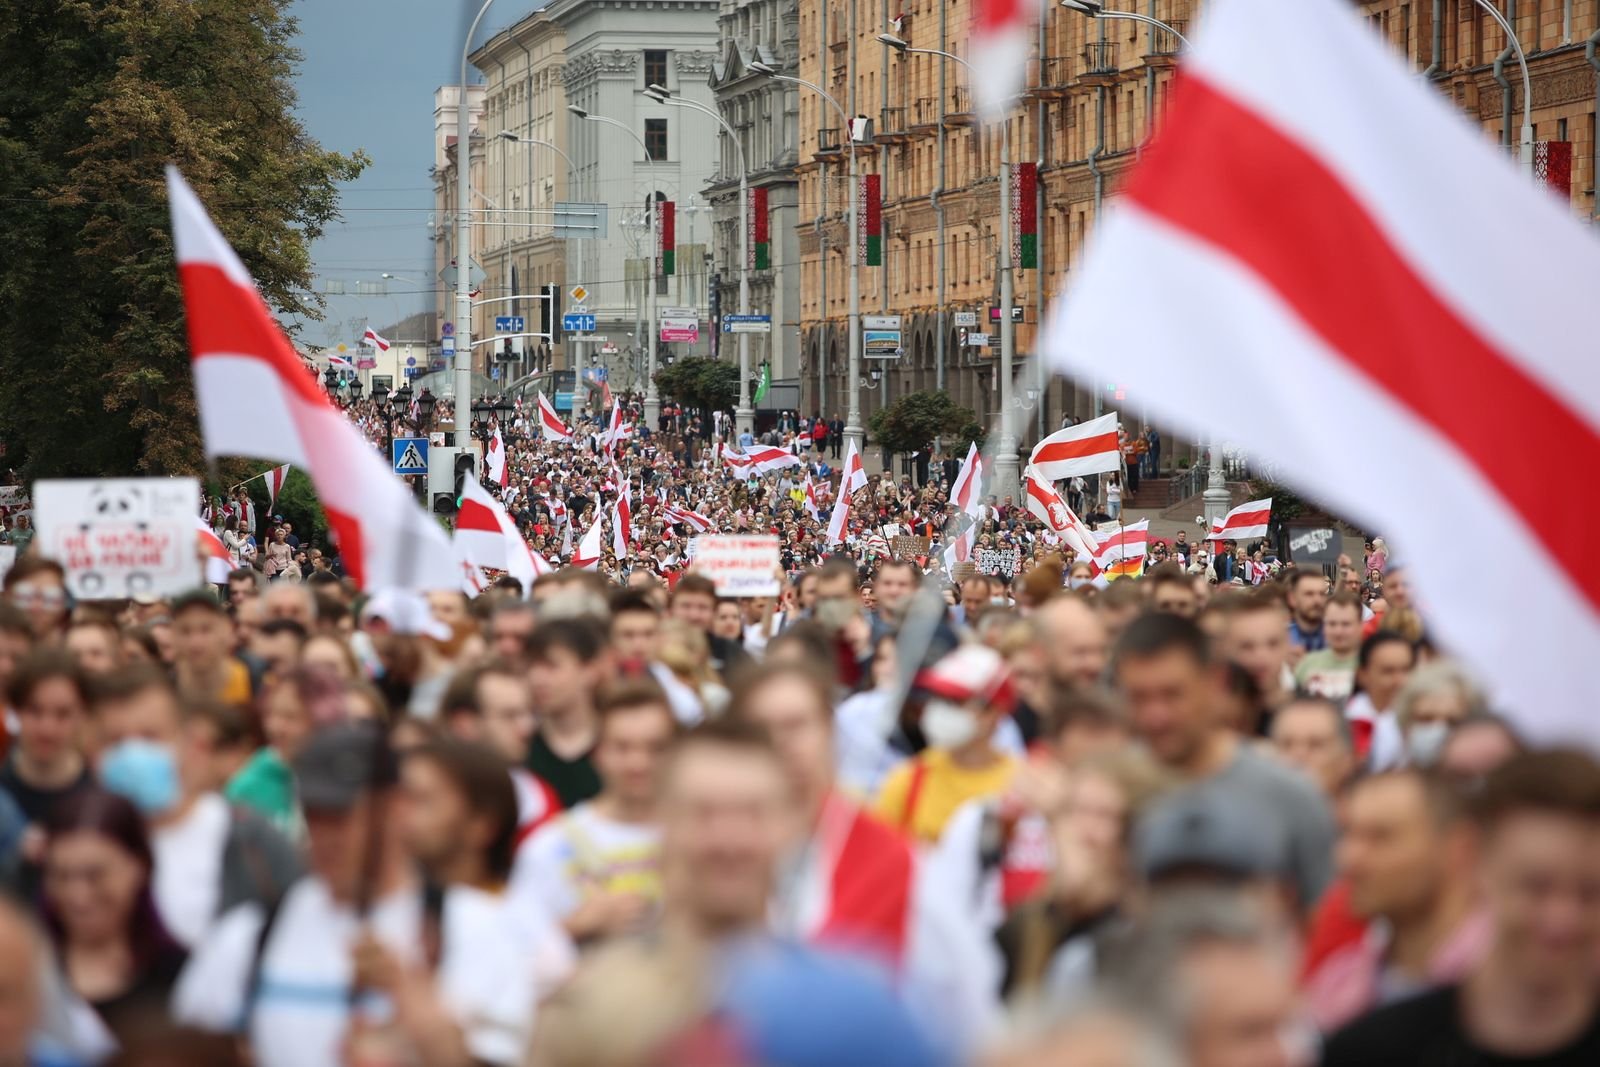 People attend an opposition rally to reject the presidential election results in Minsk